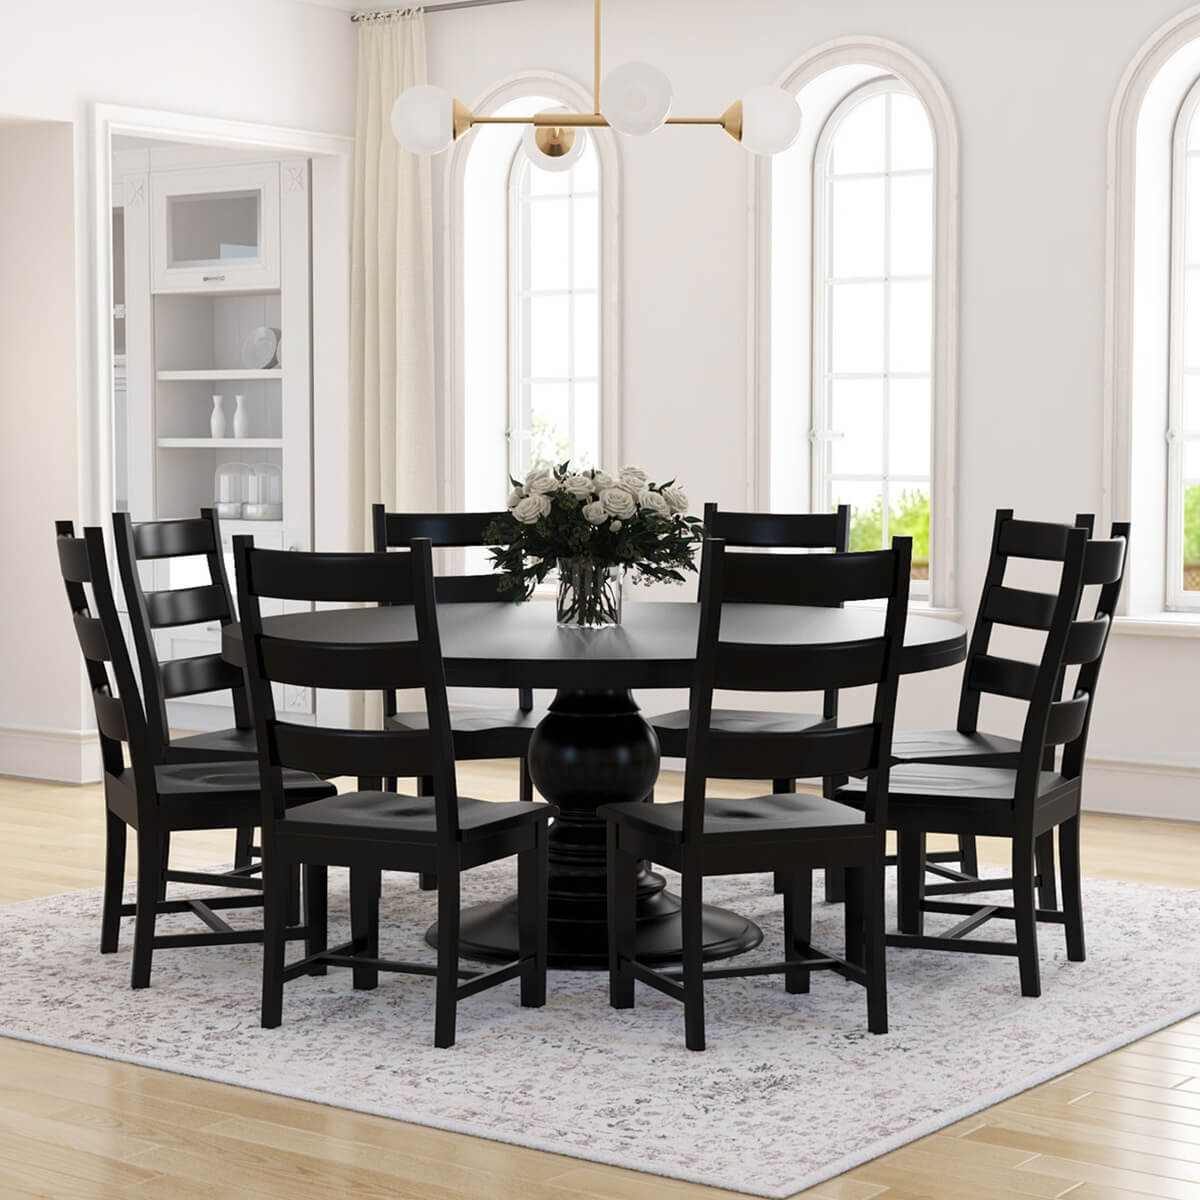 Nottingham rustic solid wood black round dining room table set for Round dining room table sets